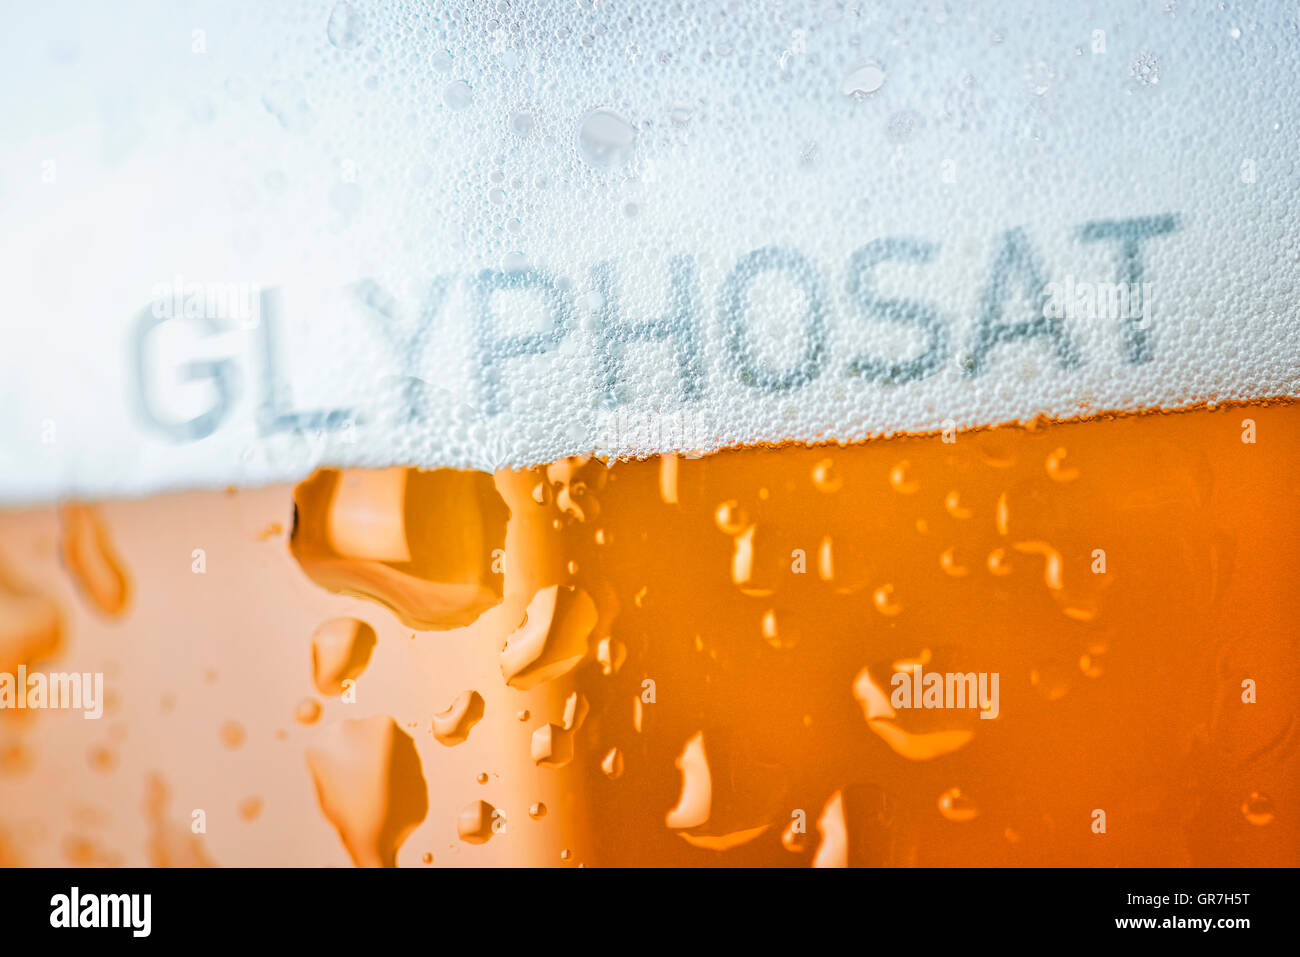 Beer Contaminated By Glyphosat - Stock Image